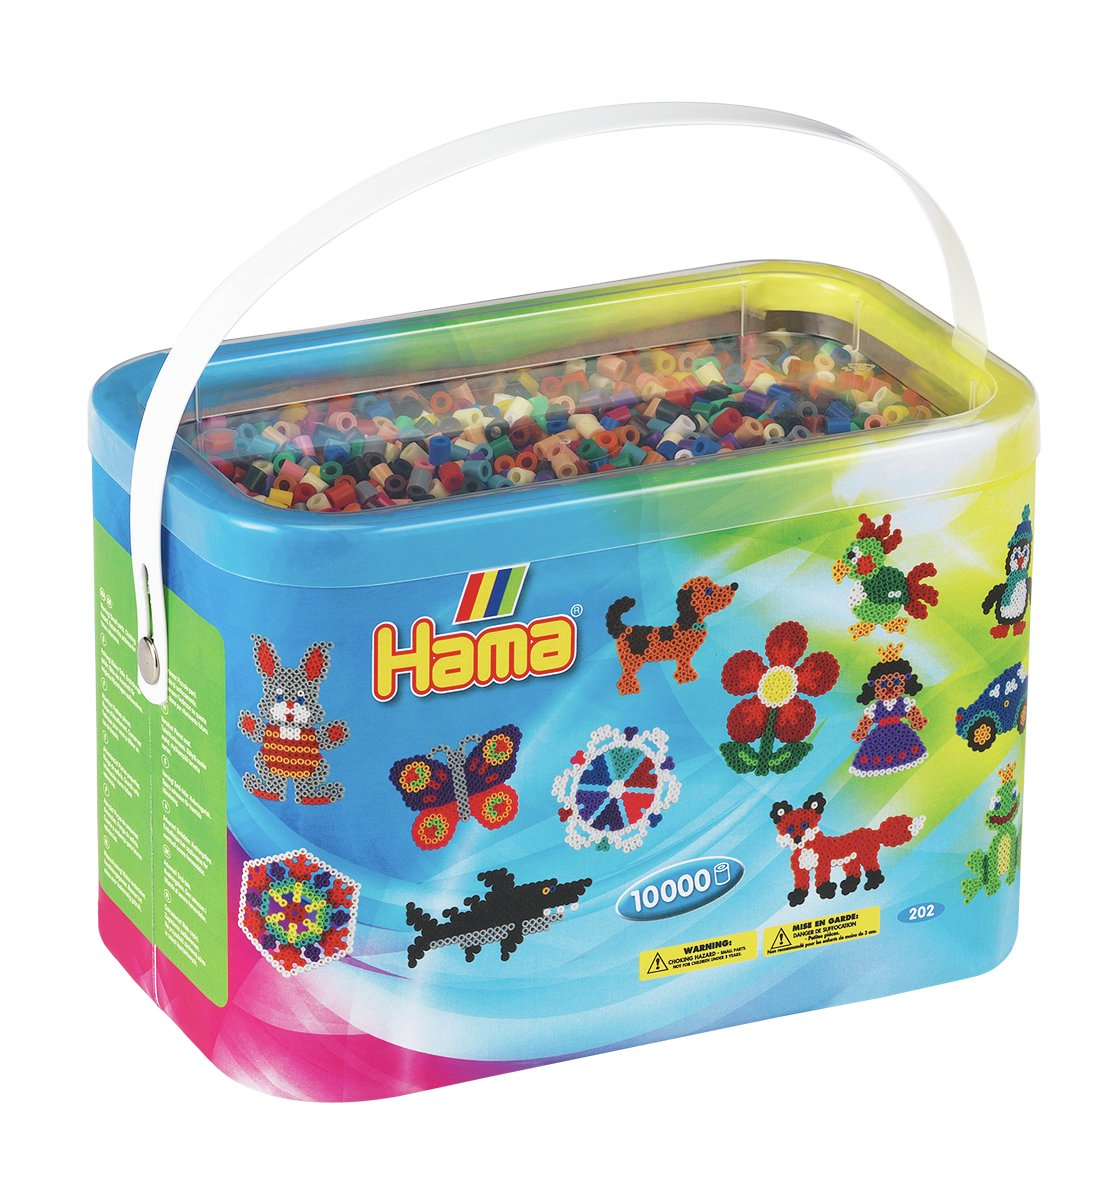 Image of Hama Beads 10,000 Beads and Pegboards Bucket